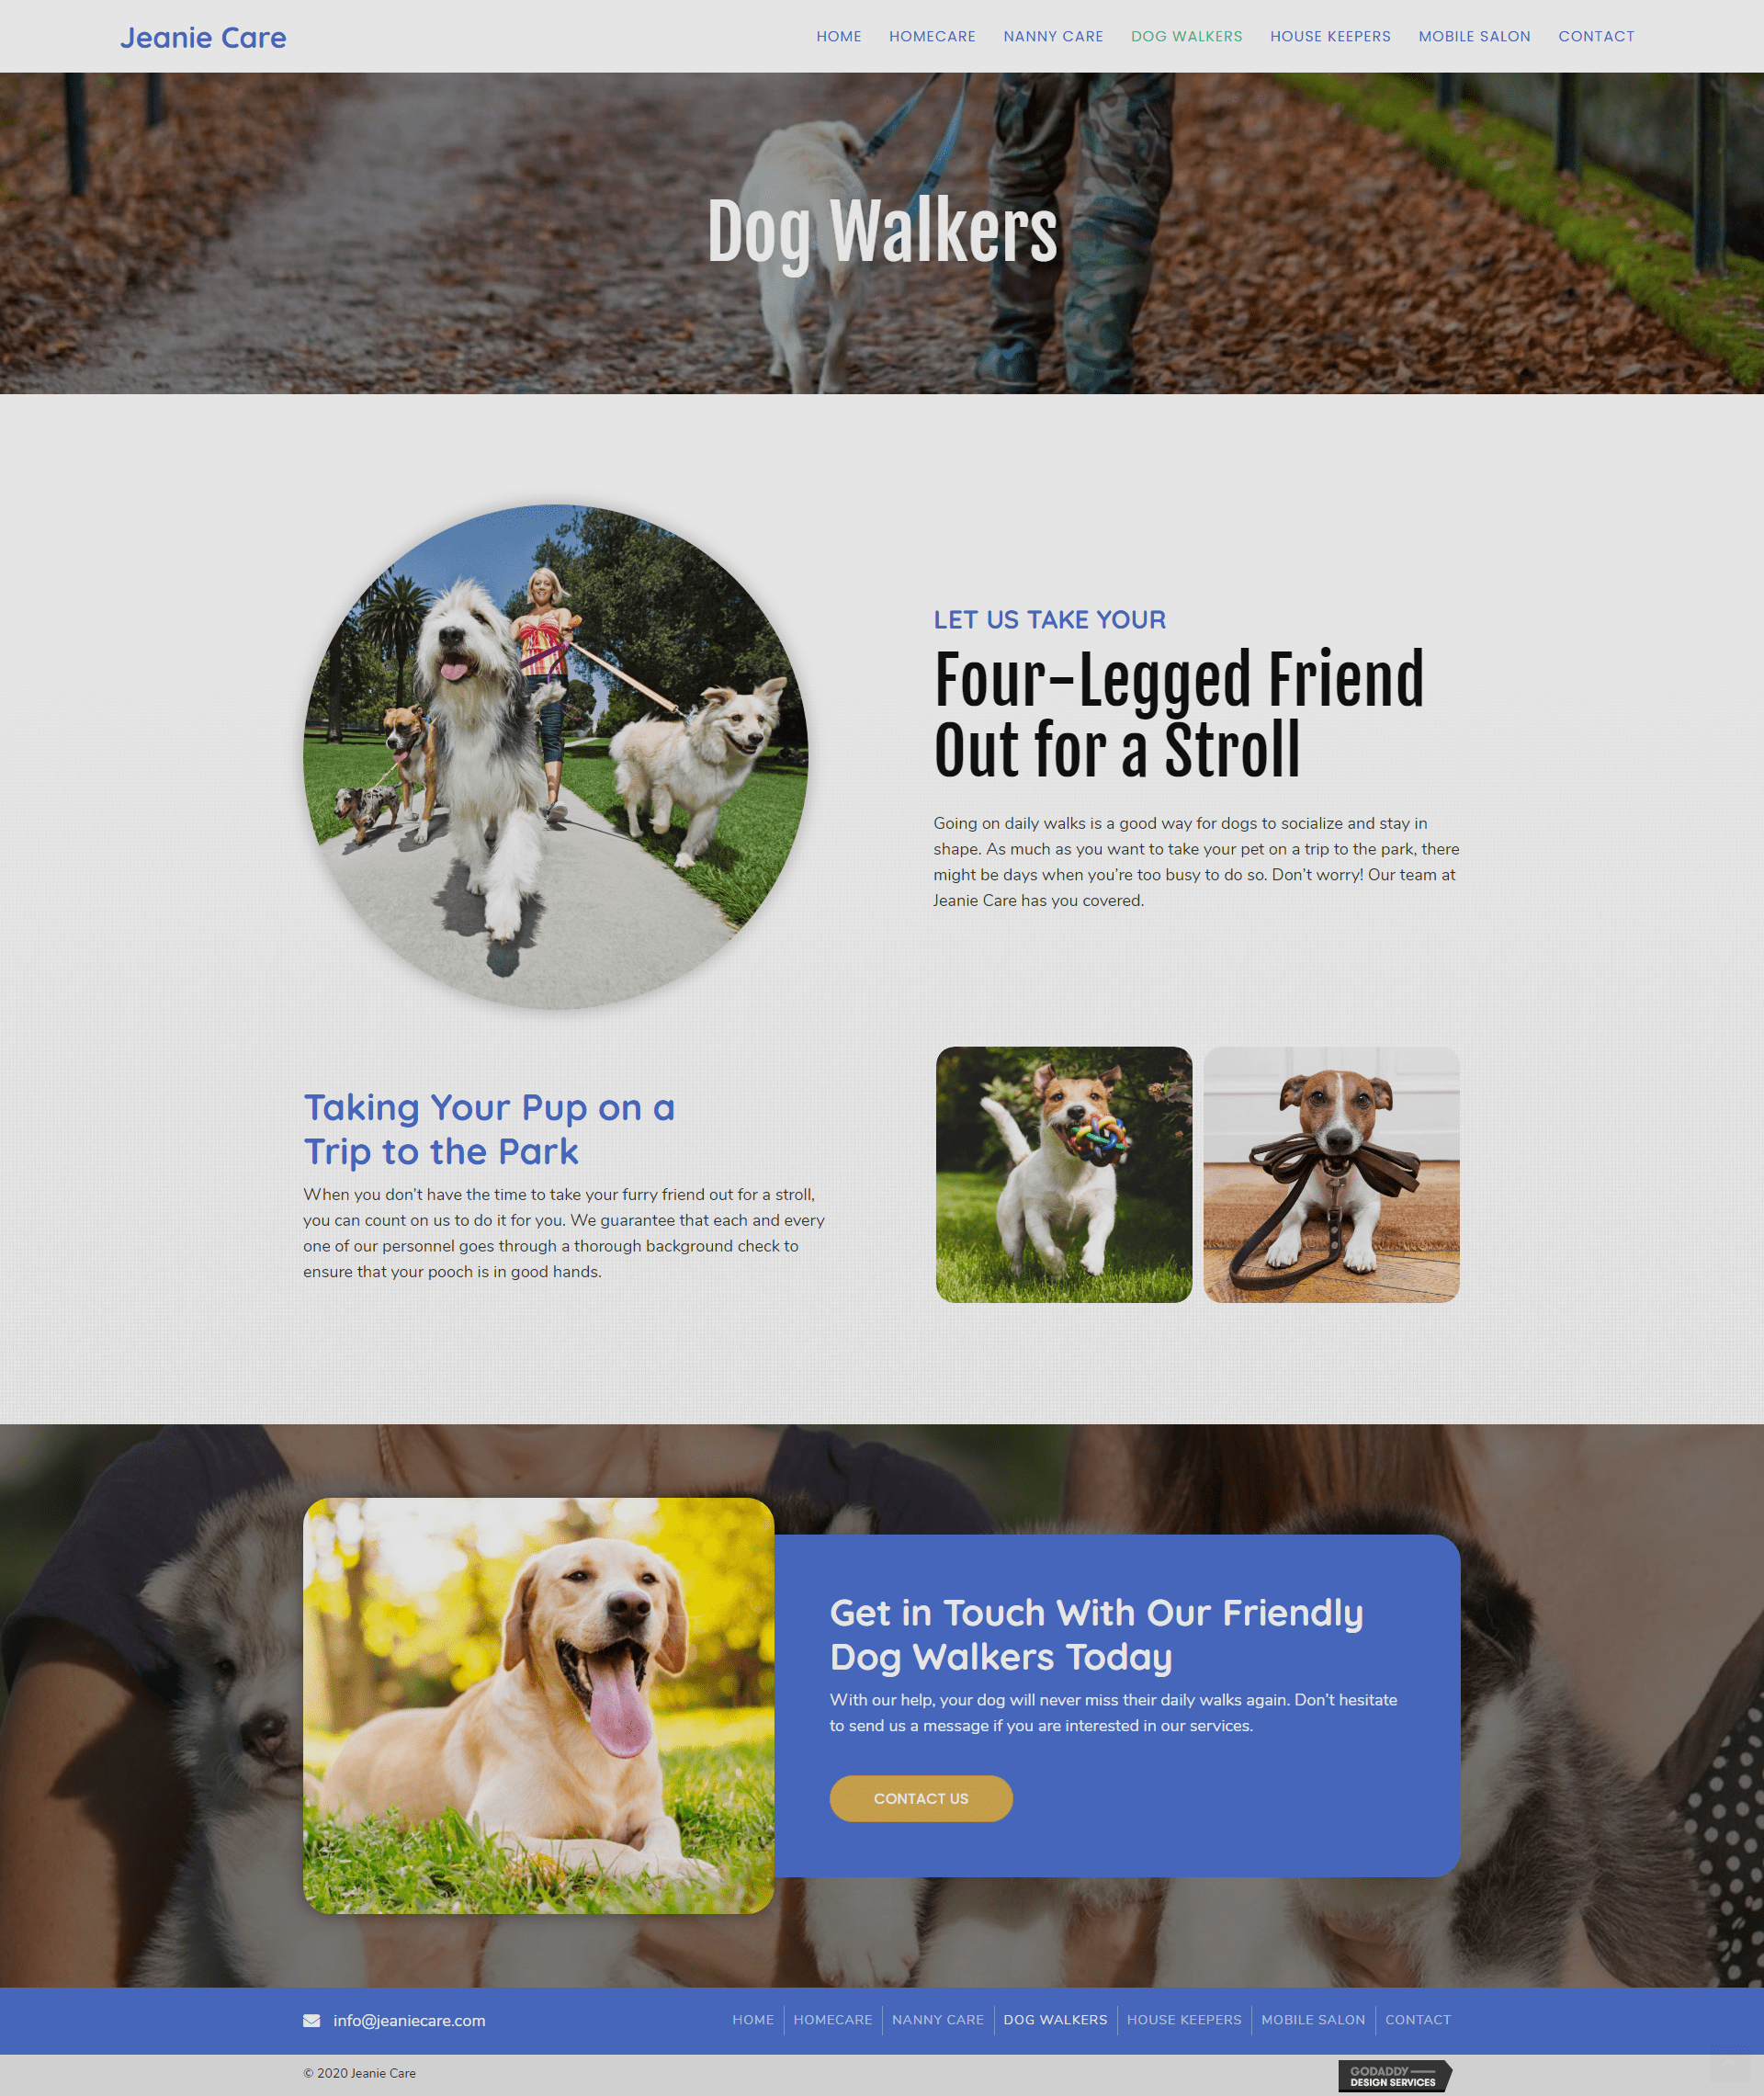 Jeanie Care Dog Walkers Page